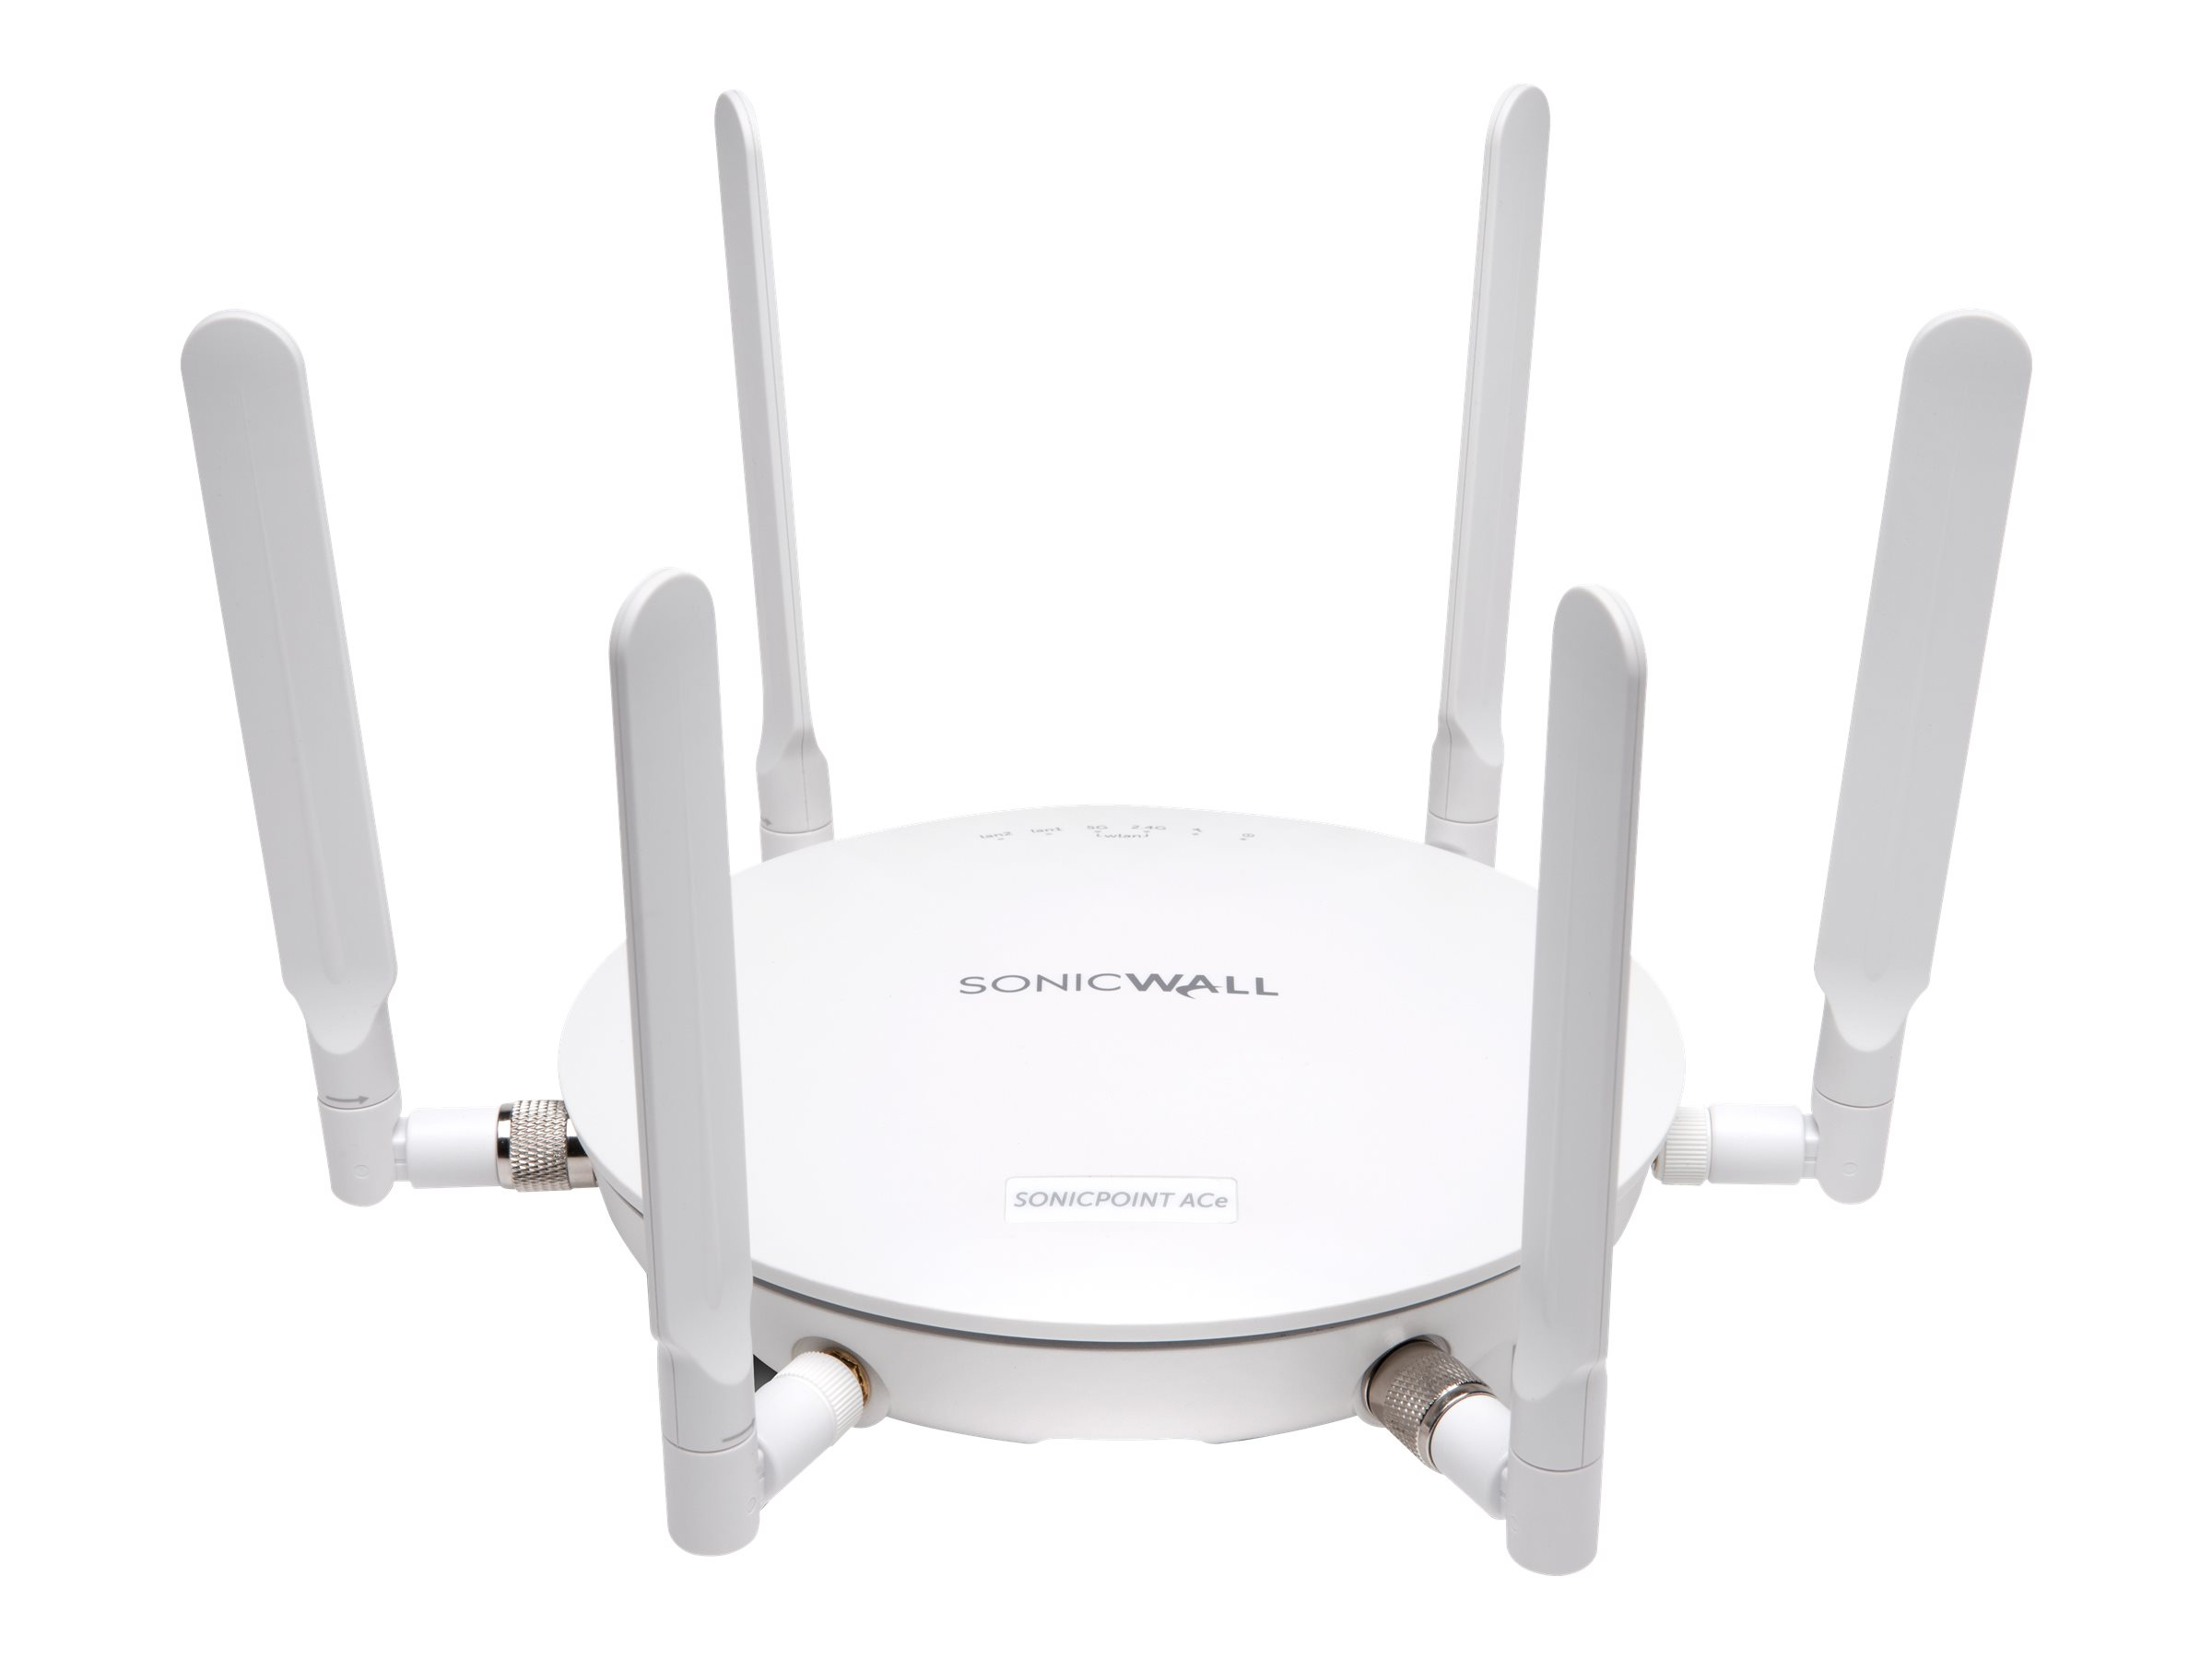 SonicWall SonicPoint ACe - Drahtlose Basisstation - mit Dynamic Support 24X7 für 3 Jahre - Wi-Fi - Dualband - mit SonicWALL 802.3at Gigabit PoE Injector